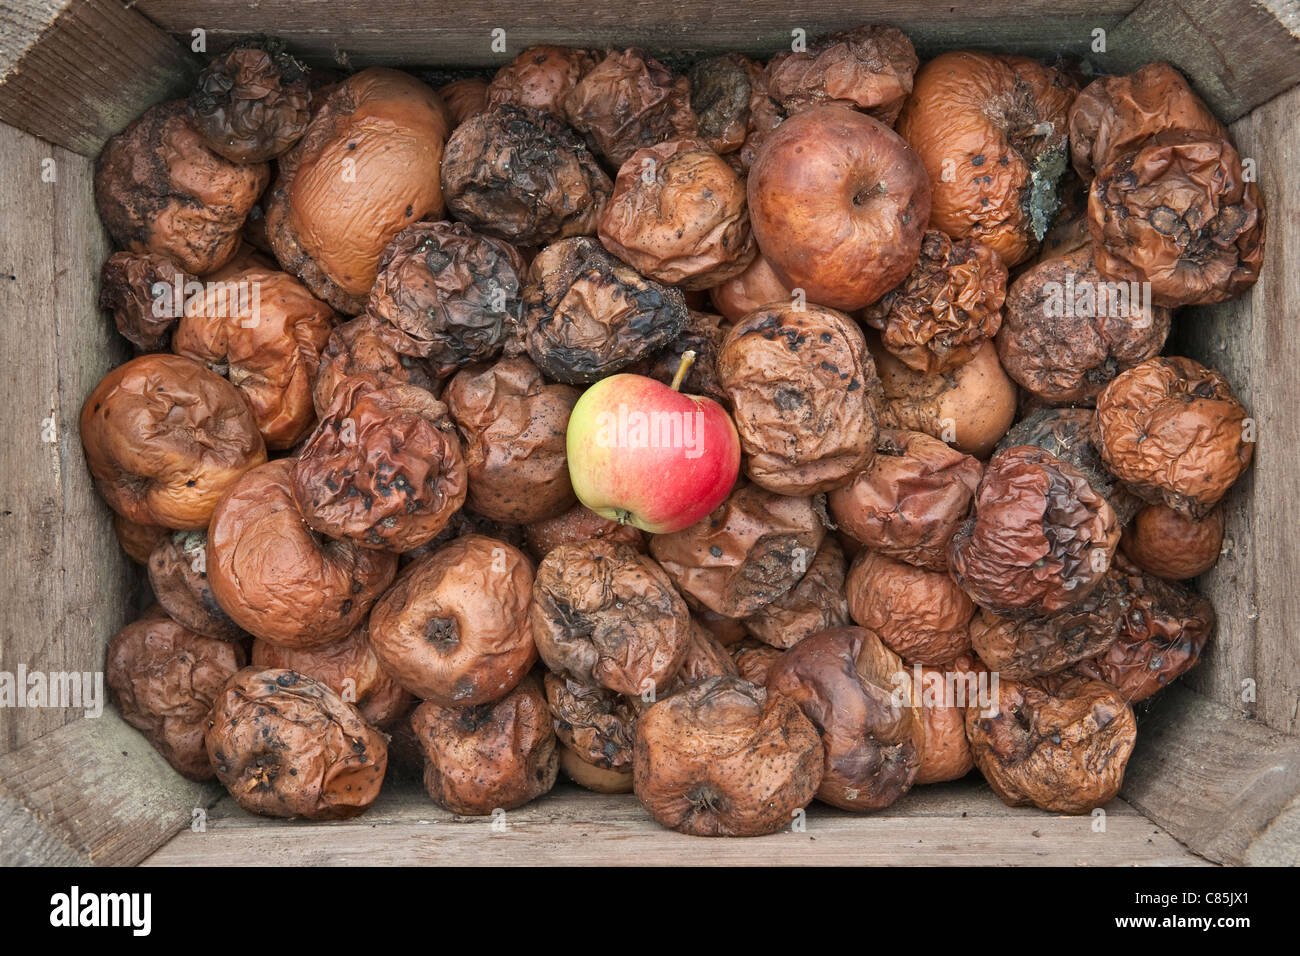 one good apple stands out in a box full of rotten apples stock photo